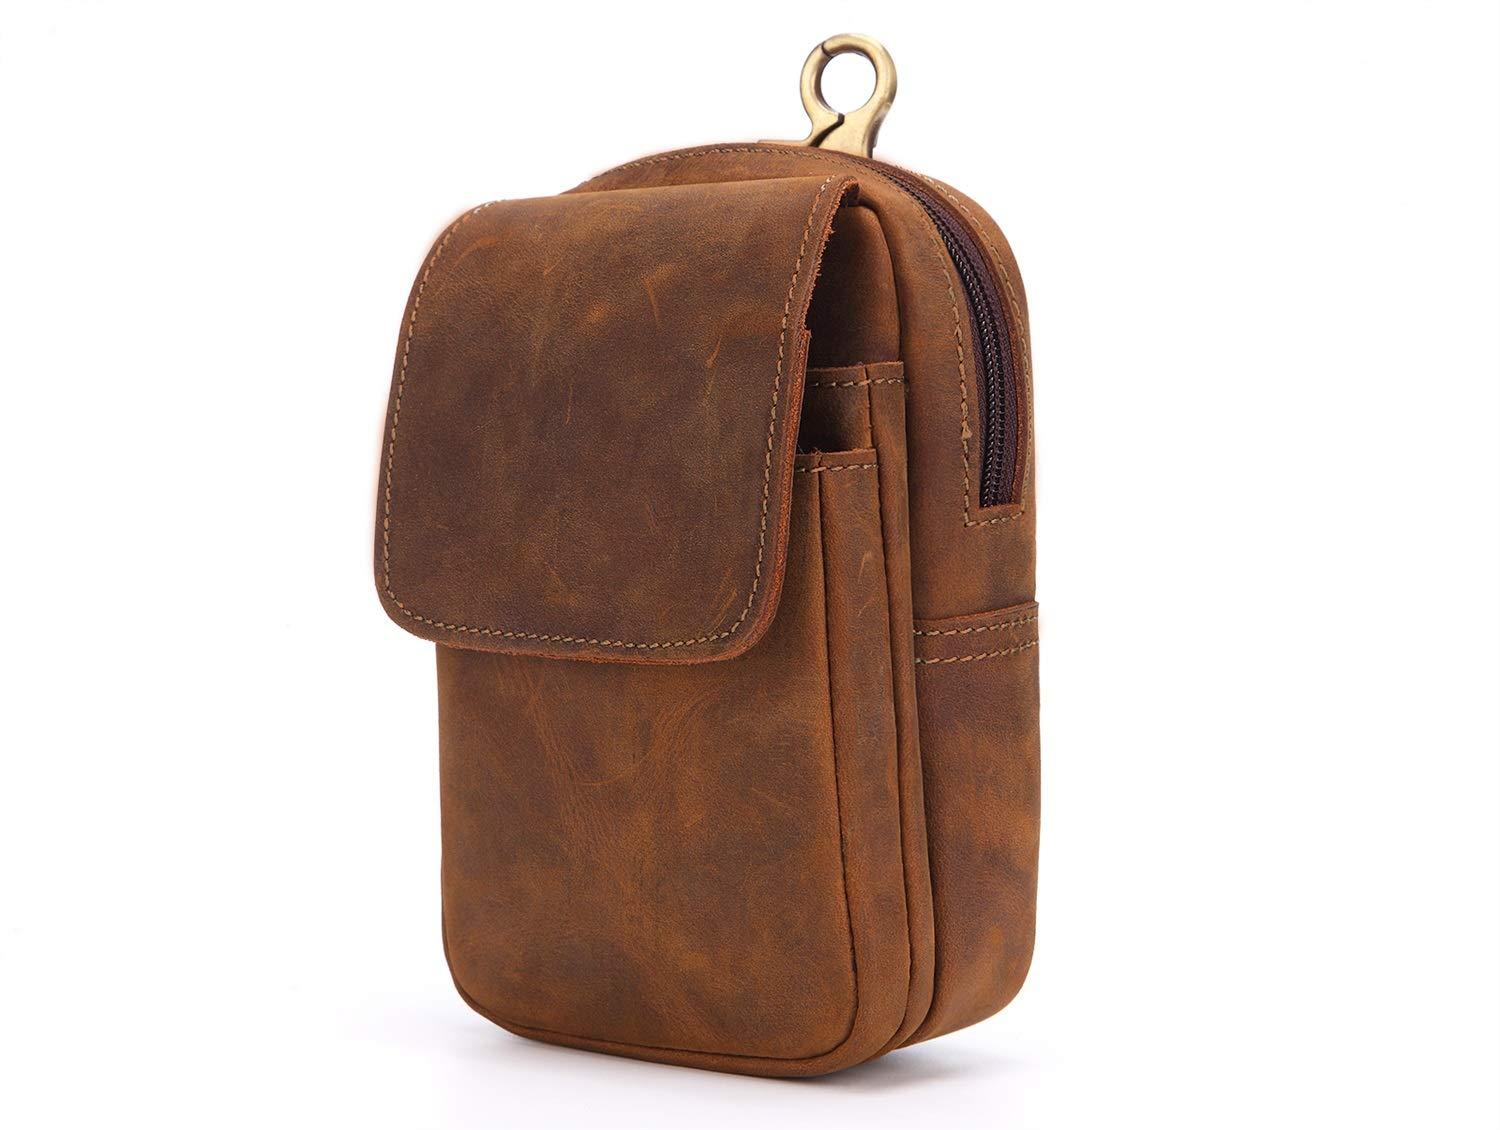 DAYIYANG Special Design 2018 New Mens Leather Purse Mad Horse Leather Phone Bag Retro Outdoor Small Bag Wearing A Belt Color : Brown, Size : S